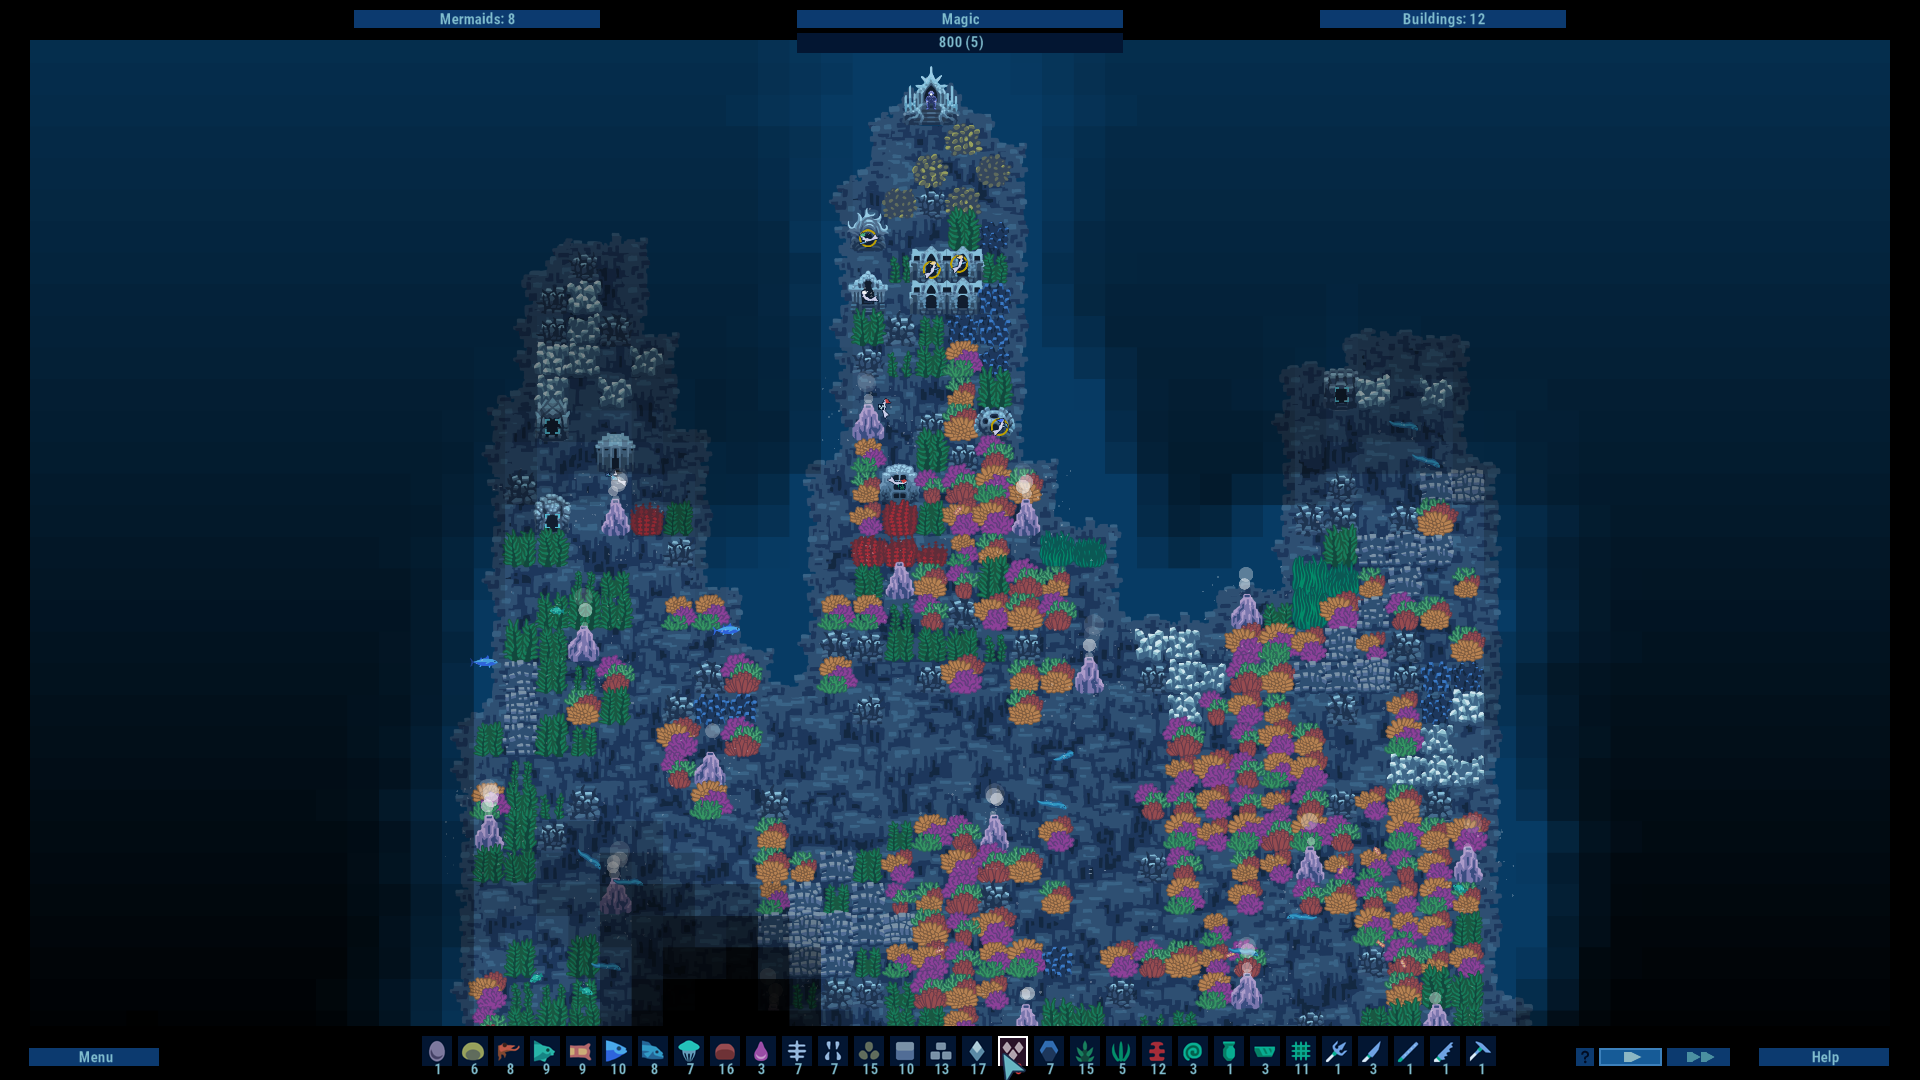 mermaidcolony_screenshot_1.png